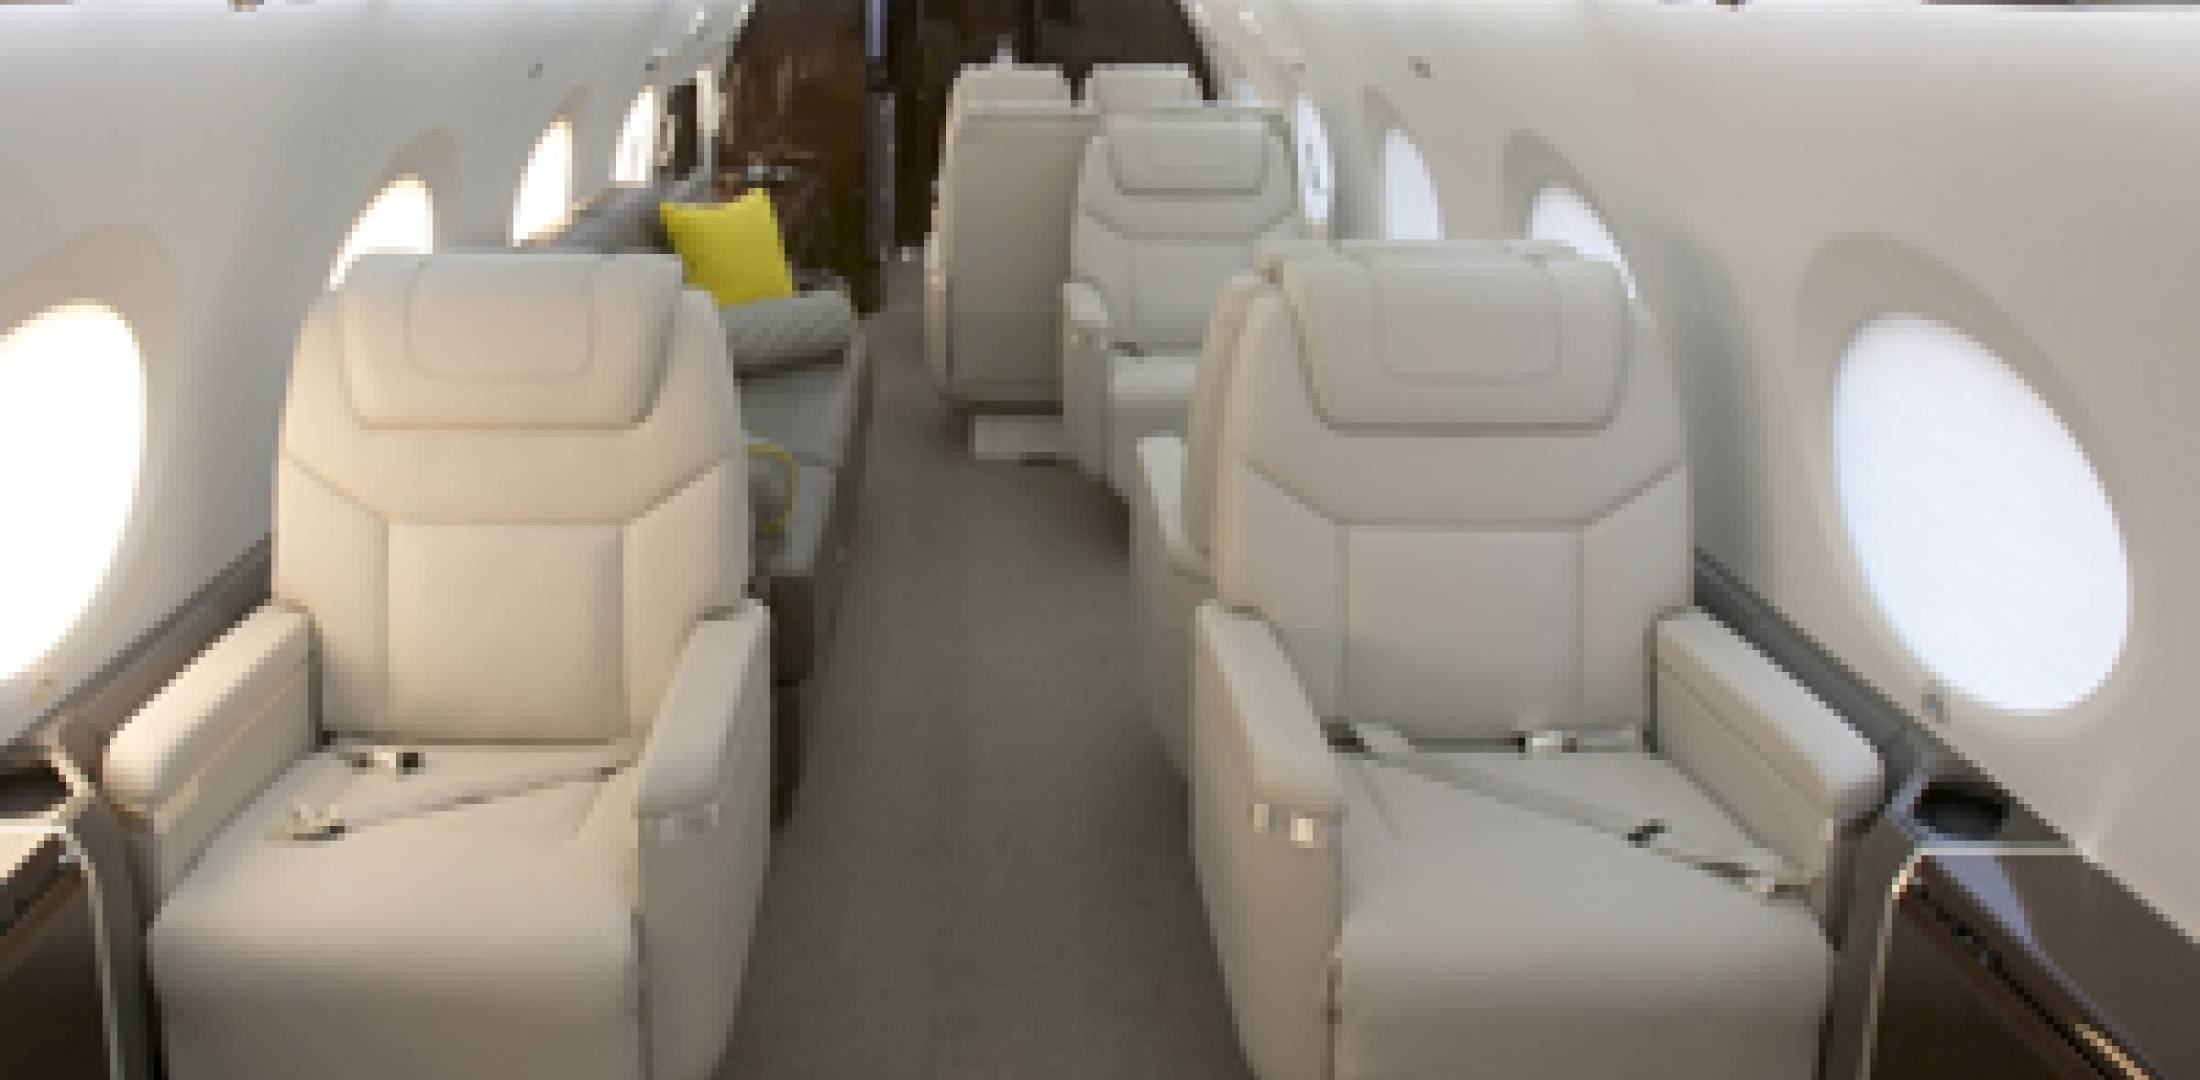 High Quality Gulfstream Aerospace Unveiled Its New U201cEliteu201d Interiors For The G550 And  G450 At The NBAA Convention This Week In Las Vegas.